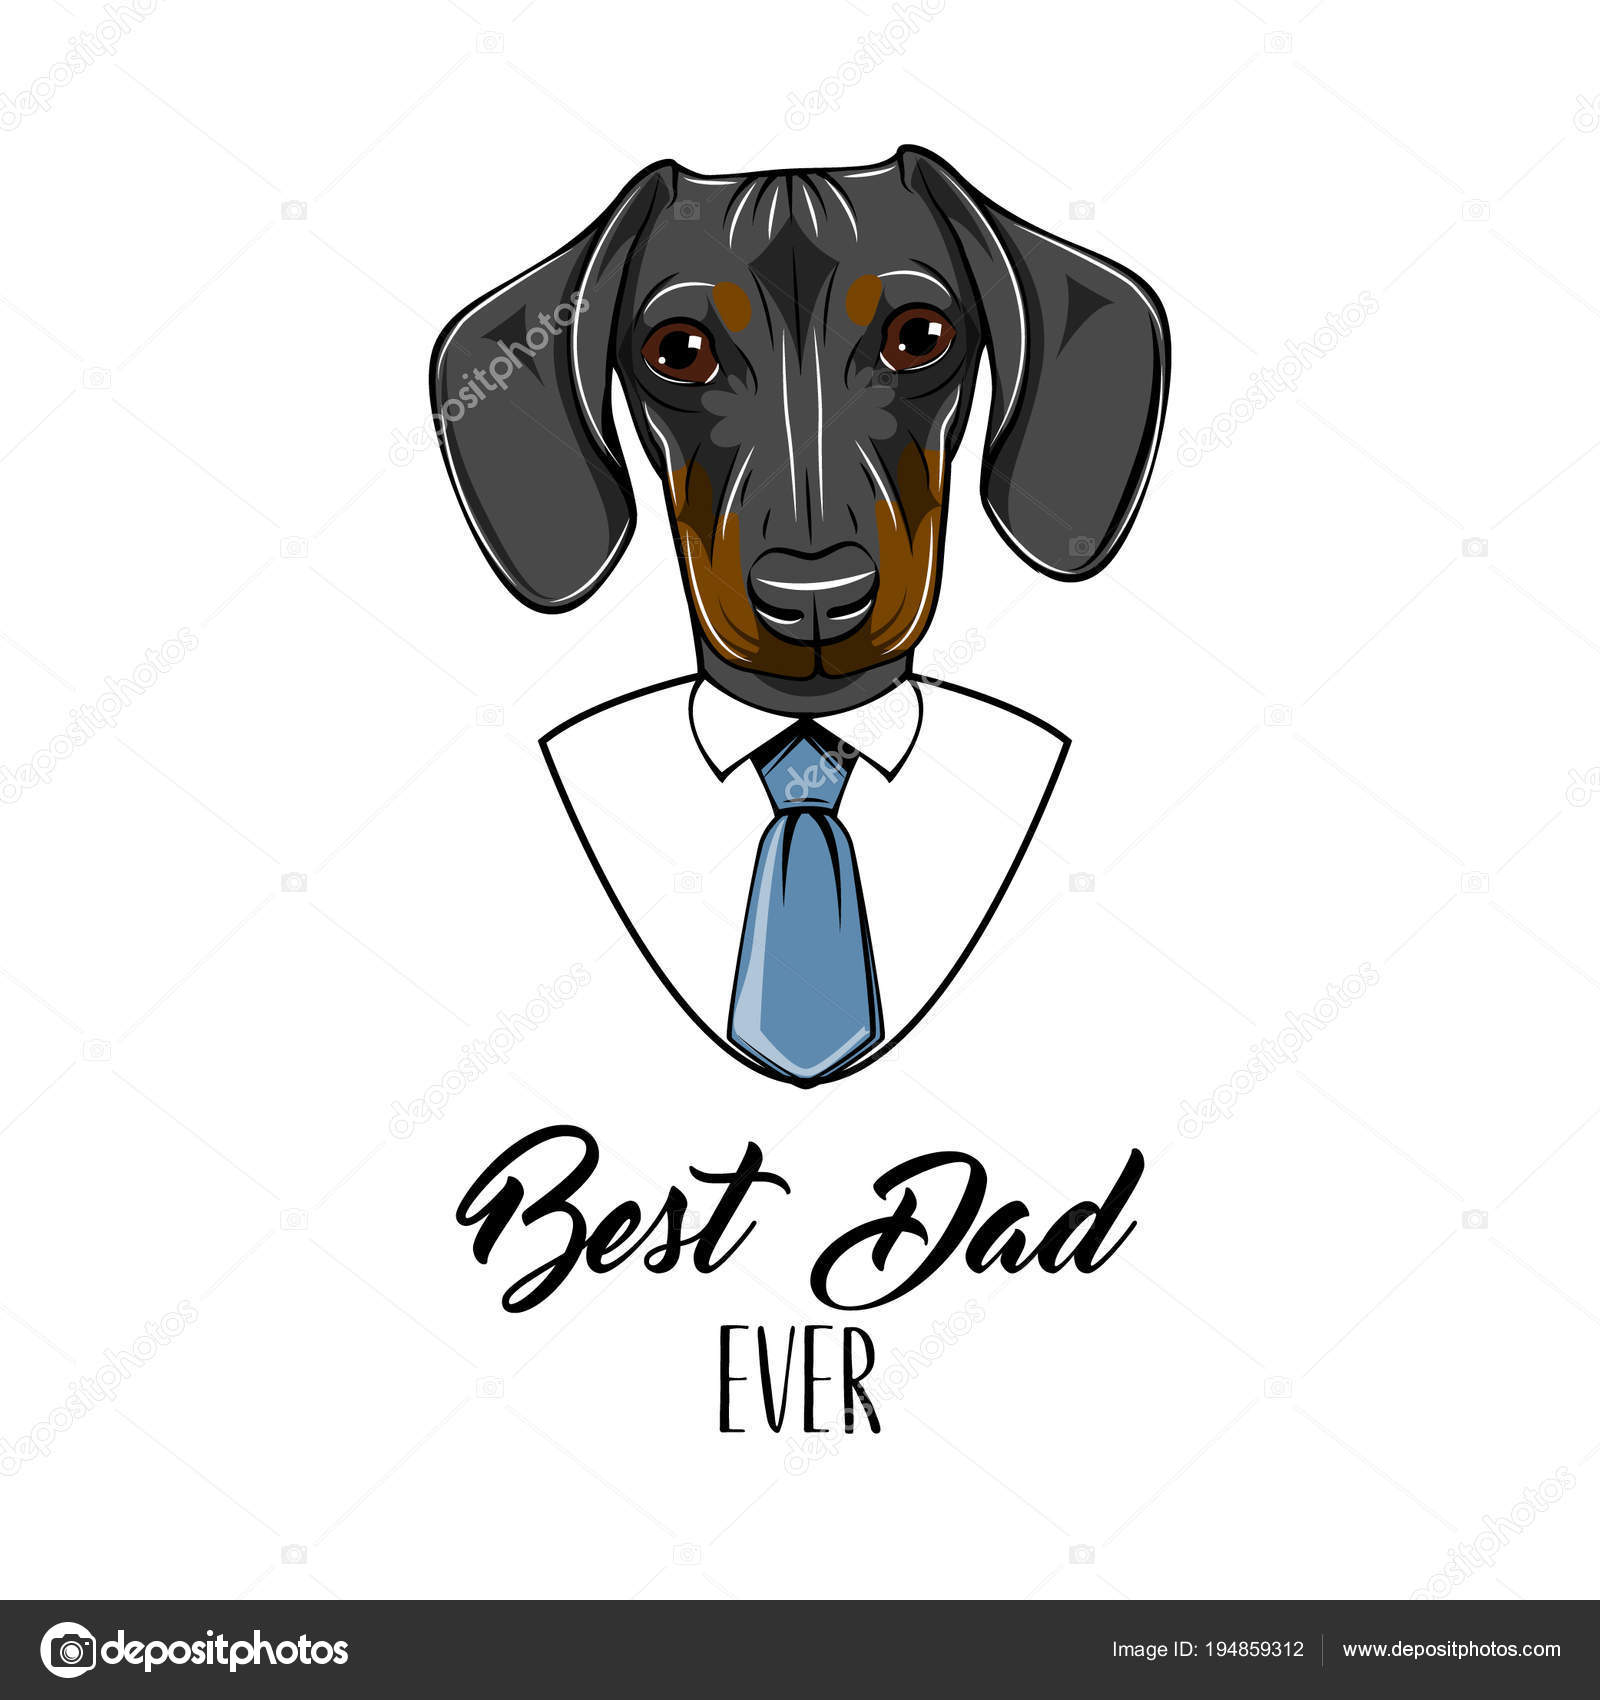 Dachshund Dog Fathers Day Greeting Card Best Dad Ever Text Cute